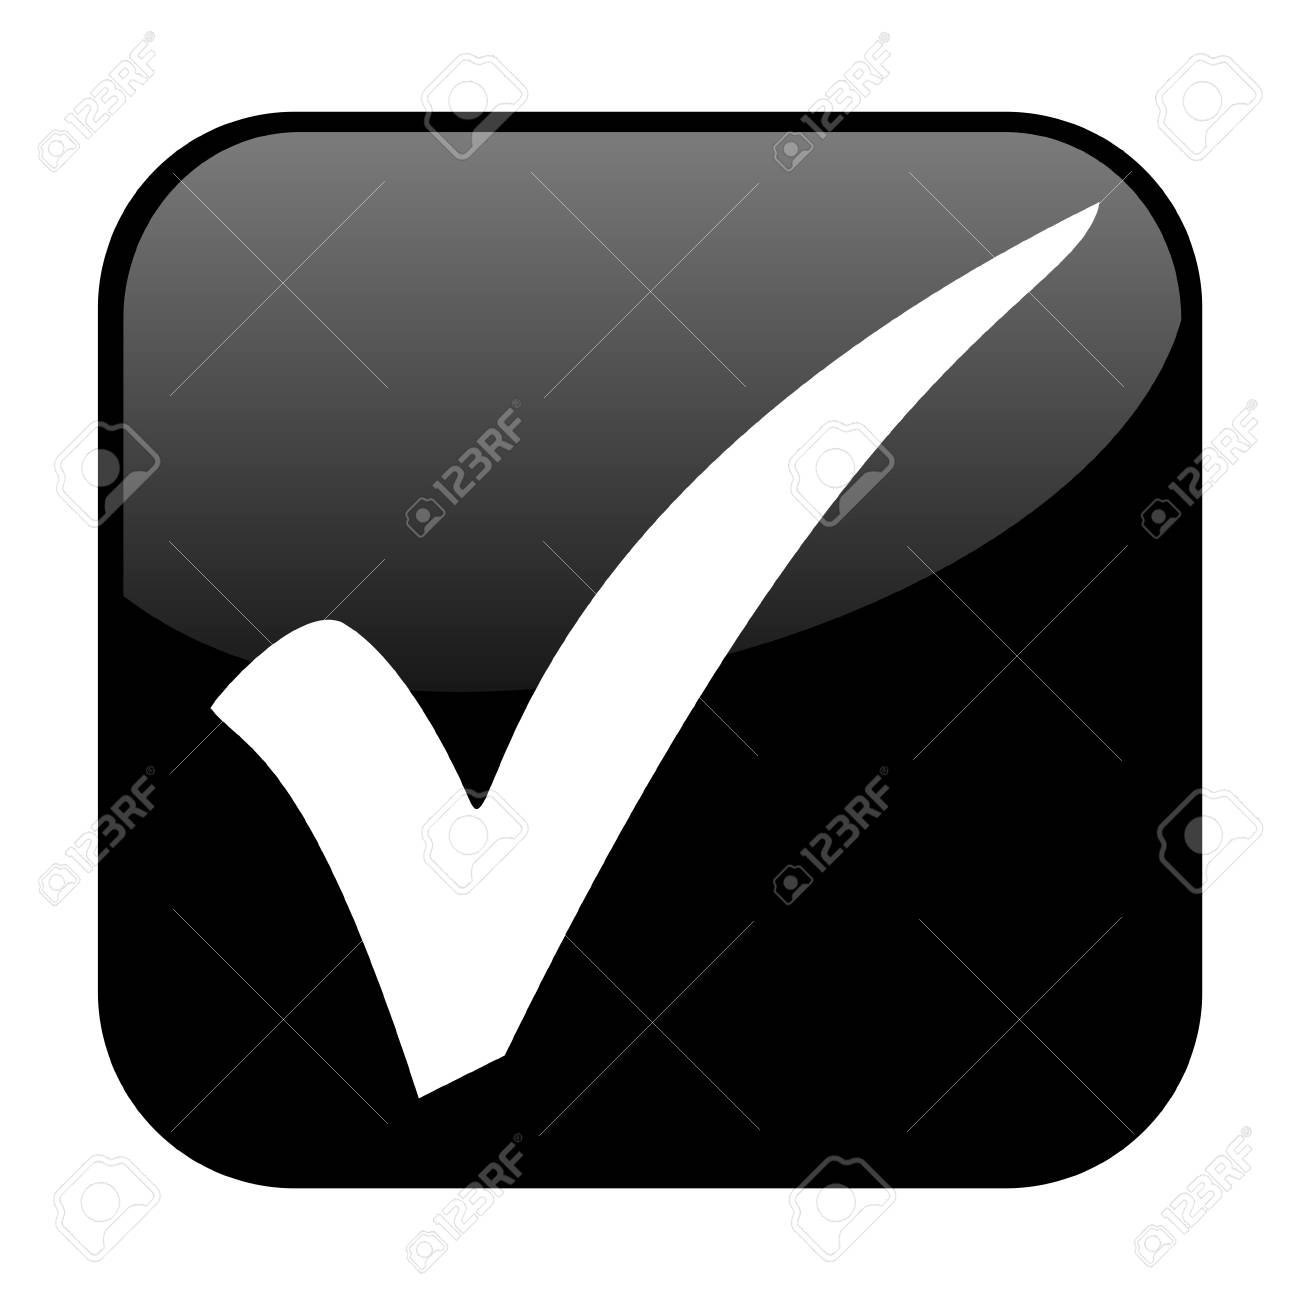 Shiny Isolated Black Button Tick Stock Photo Picture And Royalty